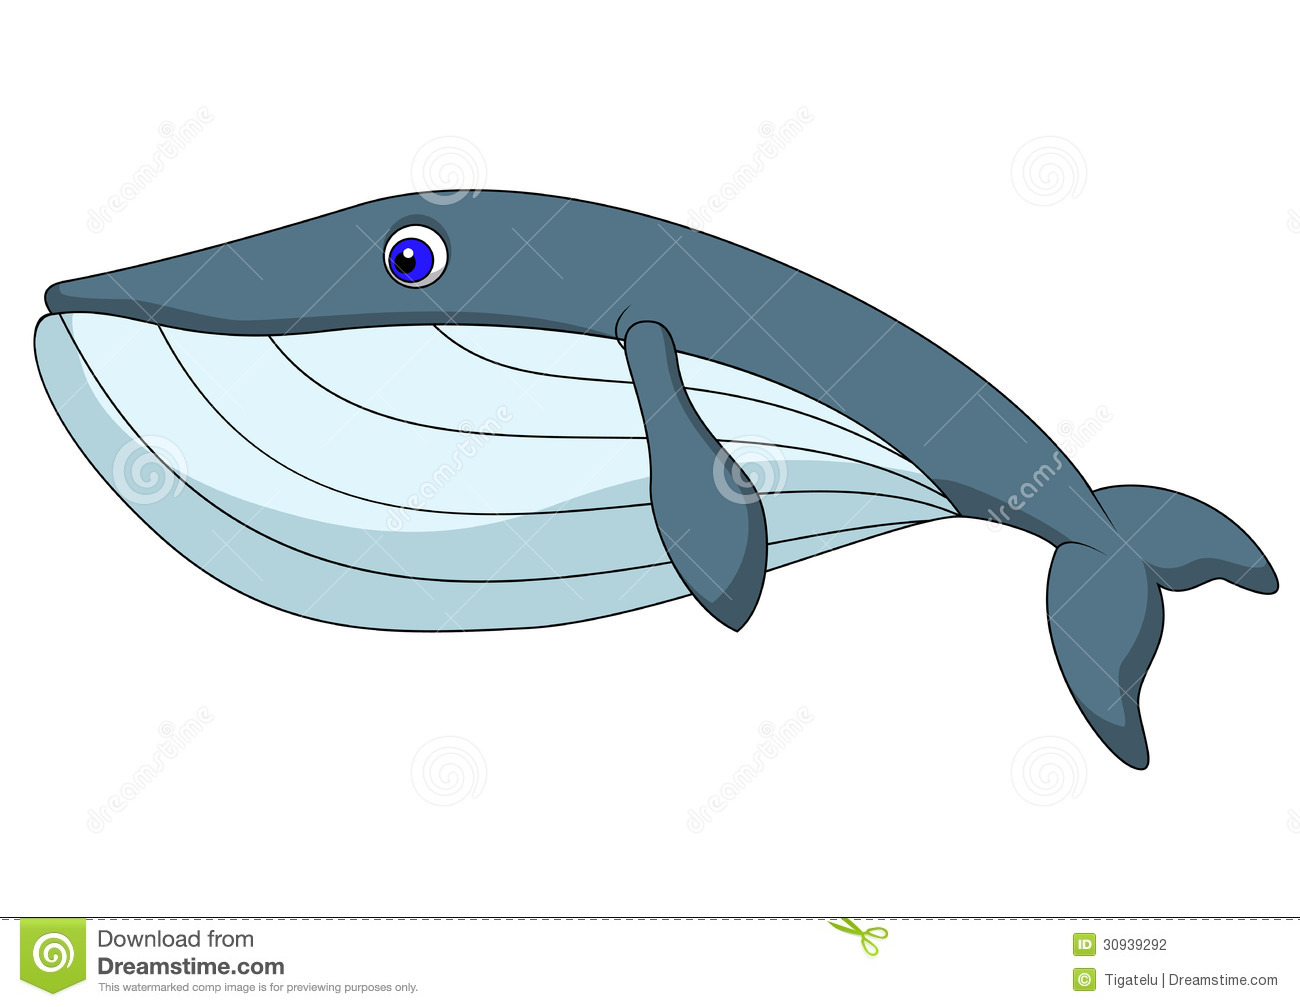 Cute whale in water cartoon isolated illustration stock photography - Cute Whale Cartoon Stock Photography